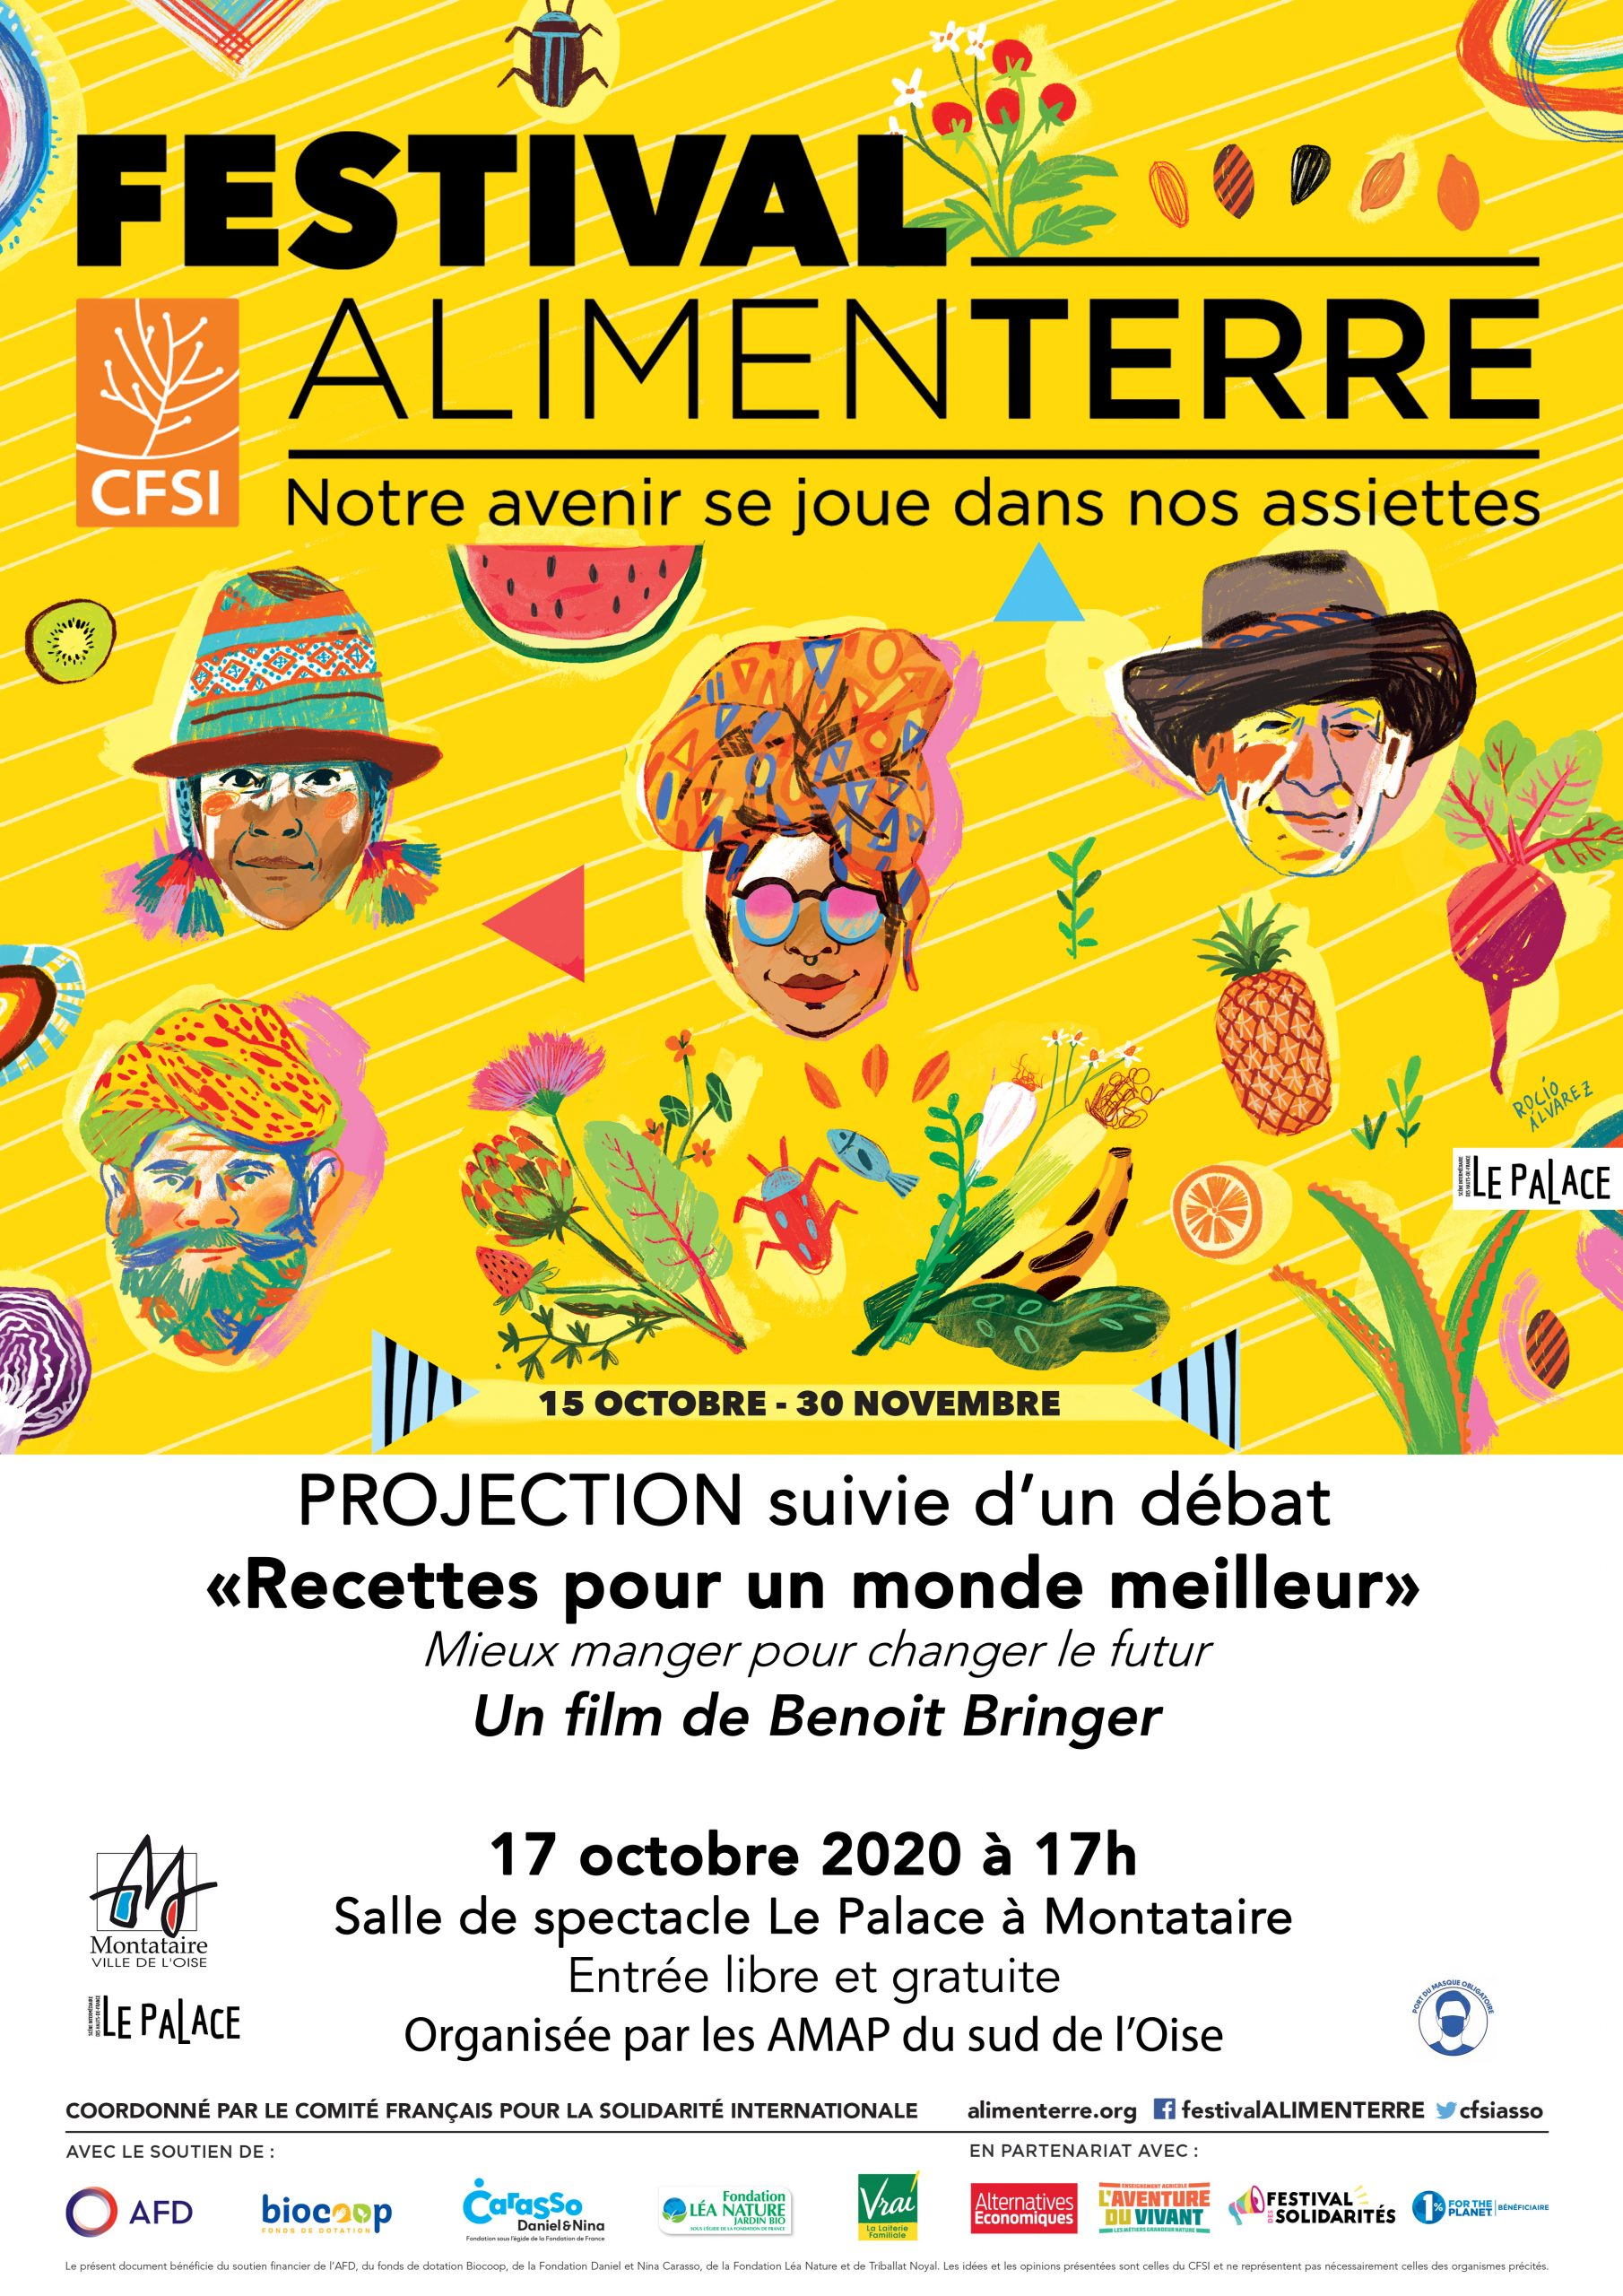 affiche-2020-festival-alimenterre-montataire-scaled.jpg